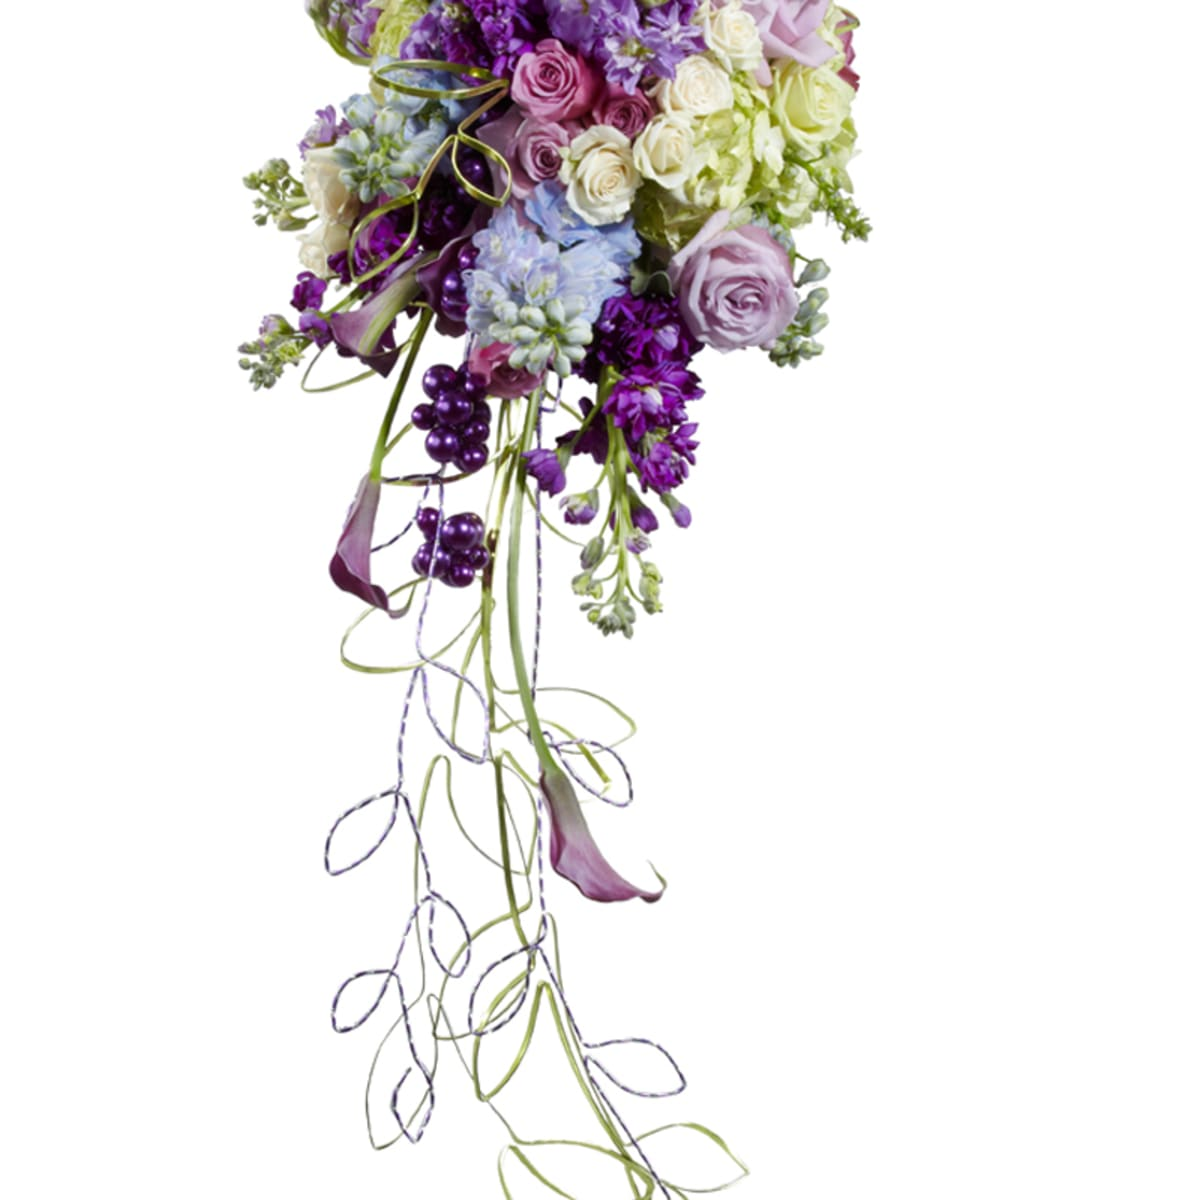 How To Make A Cascading Bouquet With Silk Or Fresh Flowers And Foliage Holidappy Celebrations